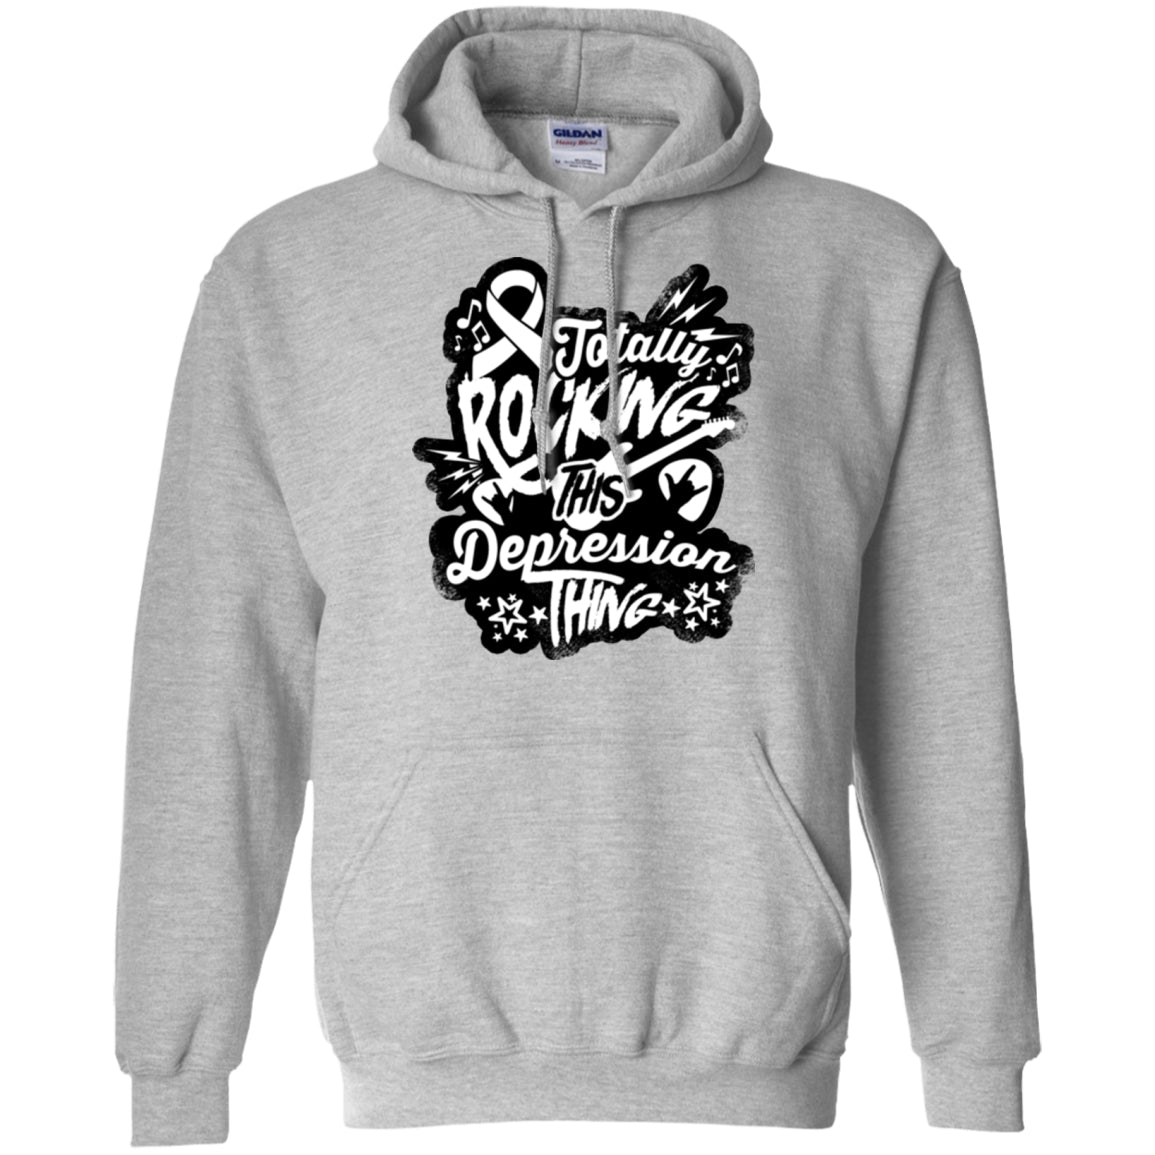 Sweatshirts - Rocking Depression Pullover Hoodie 8 Oz.